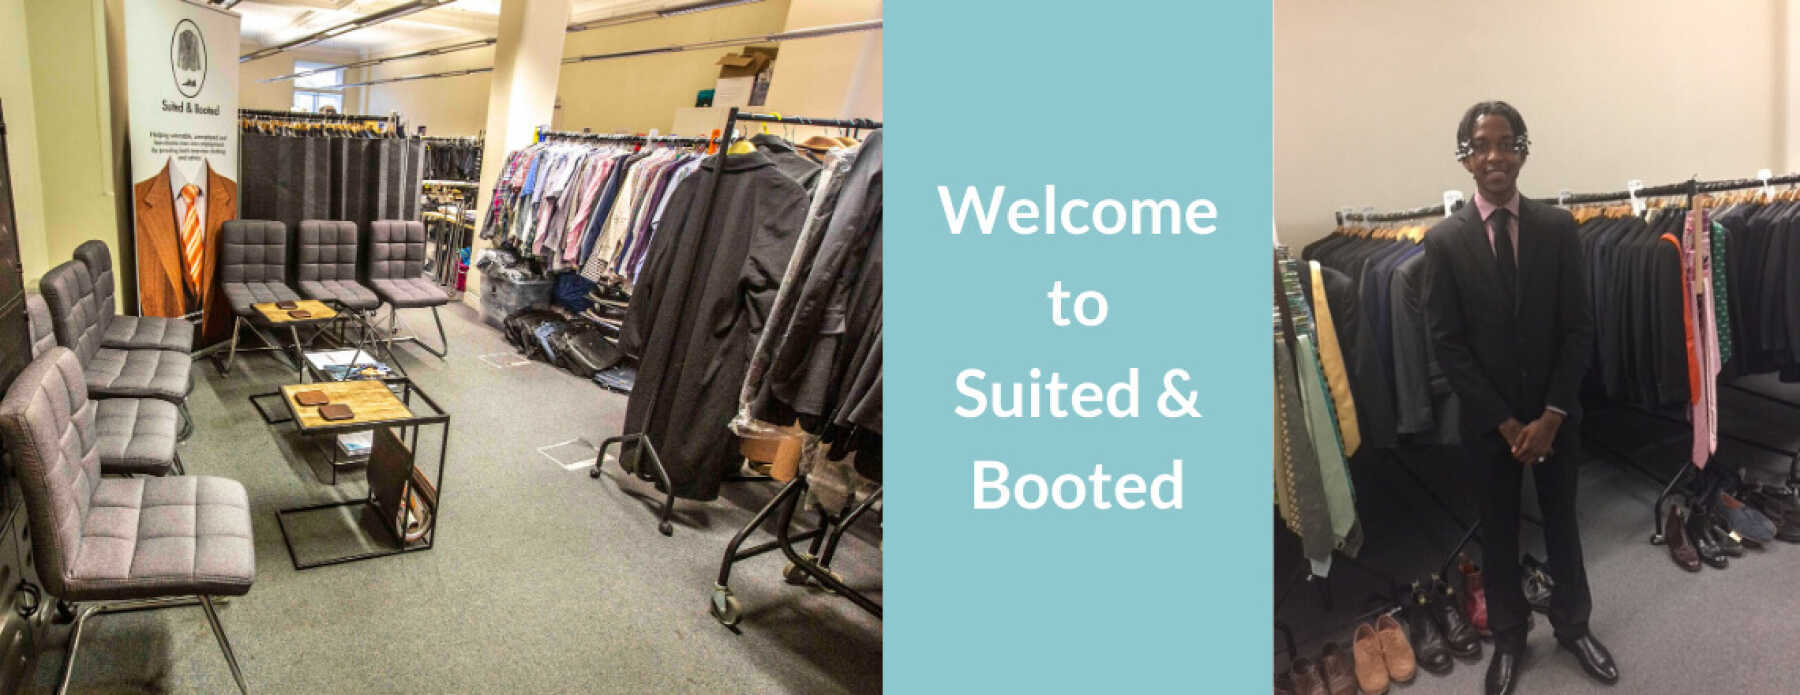 Featured Image for The Suited & Booted Centre